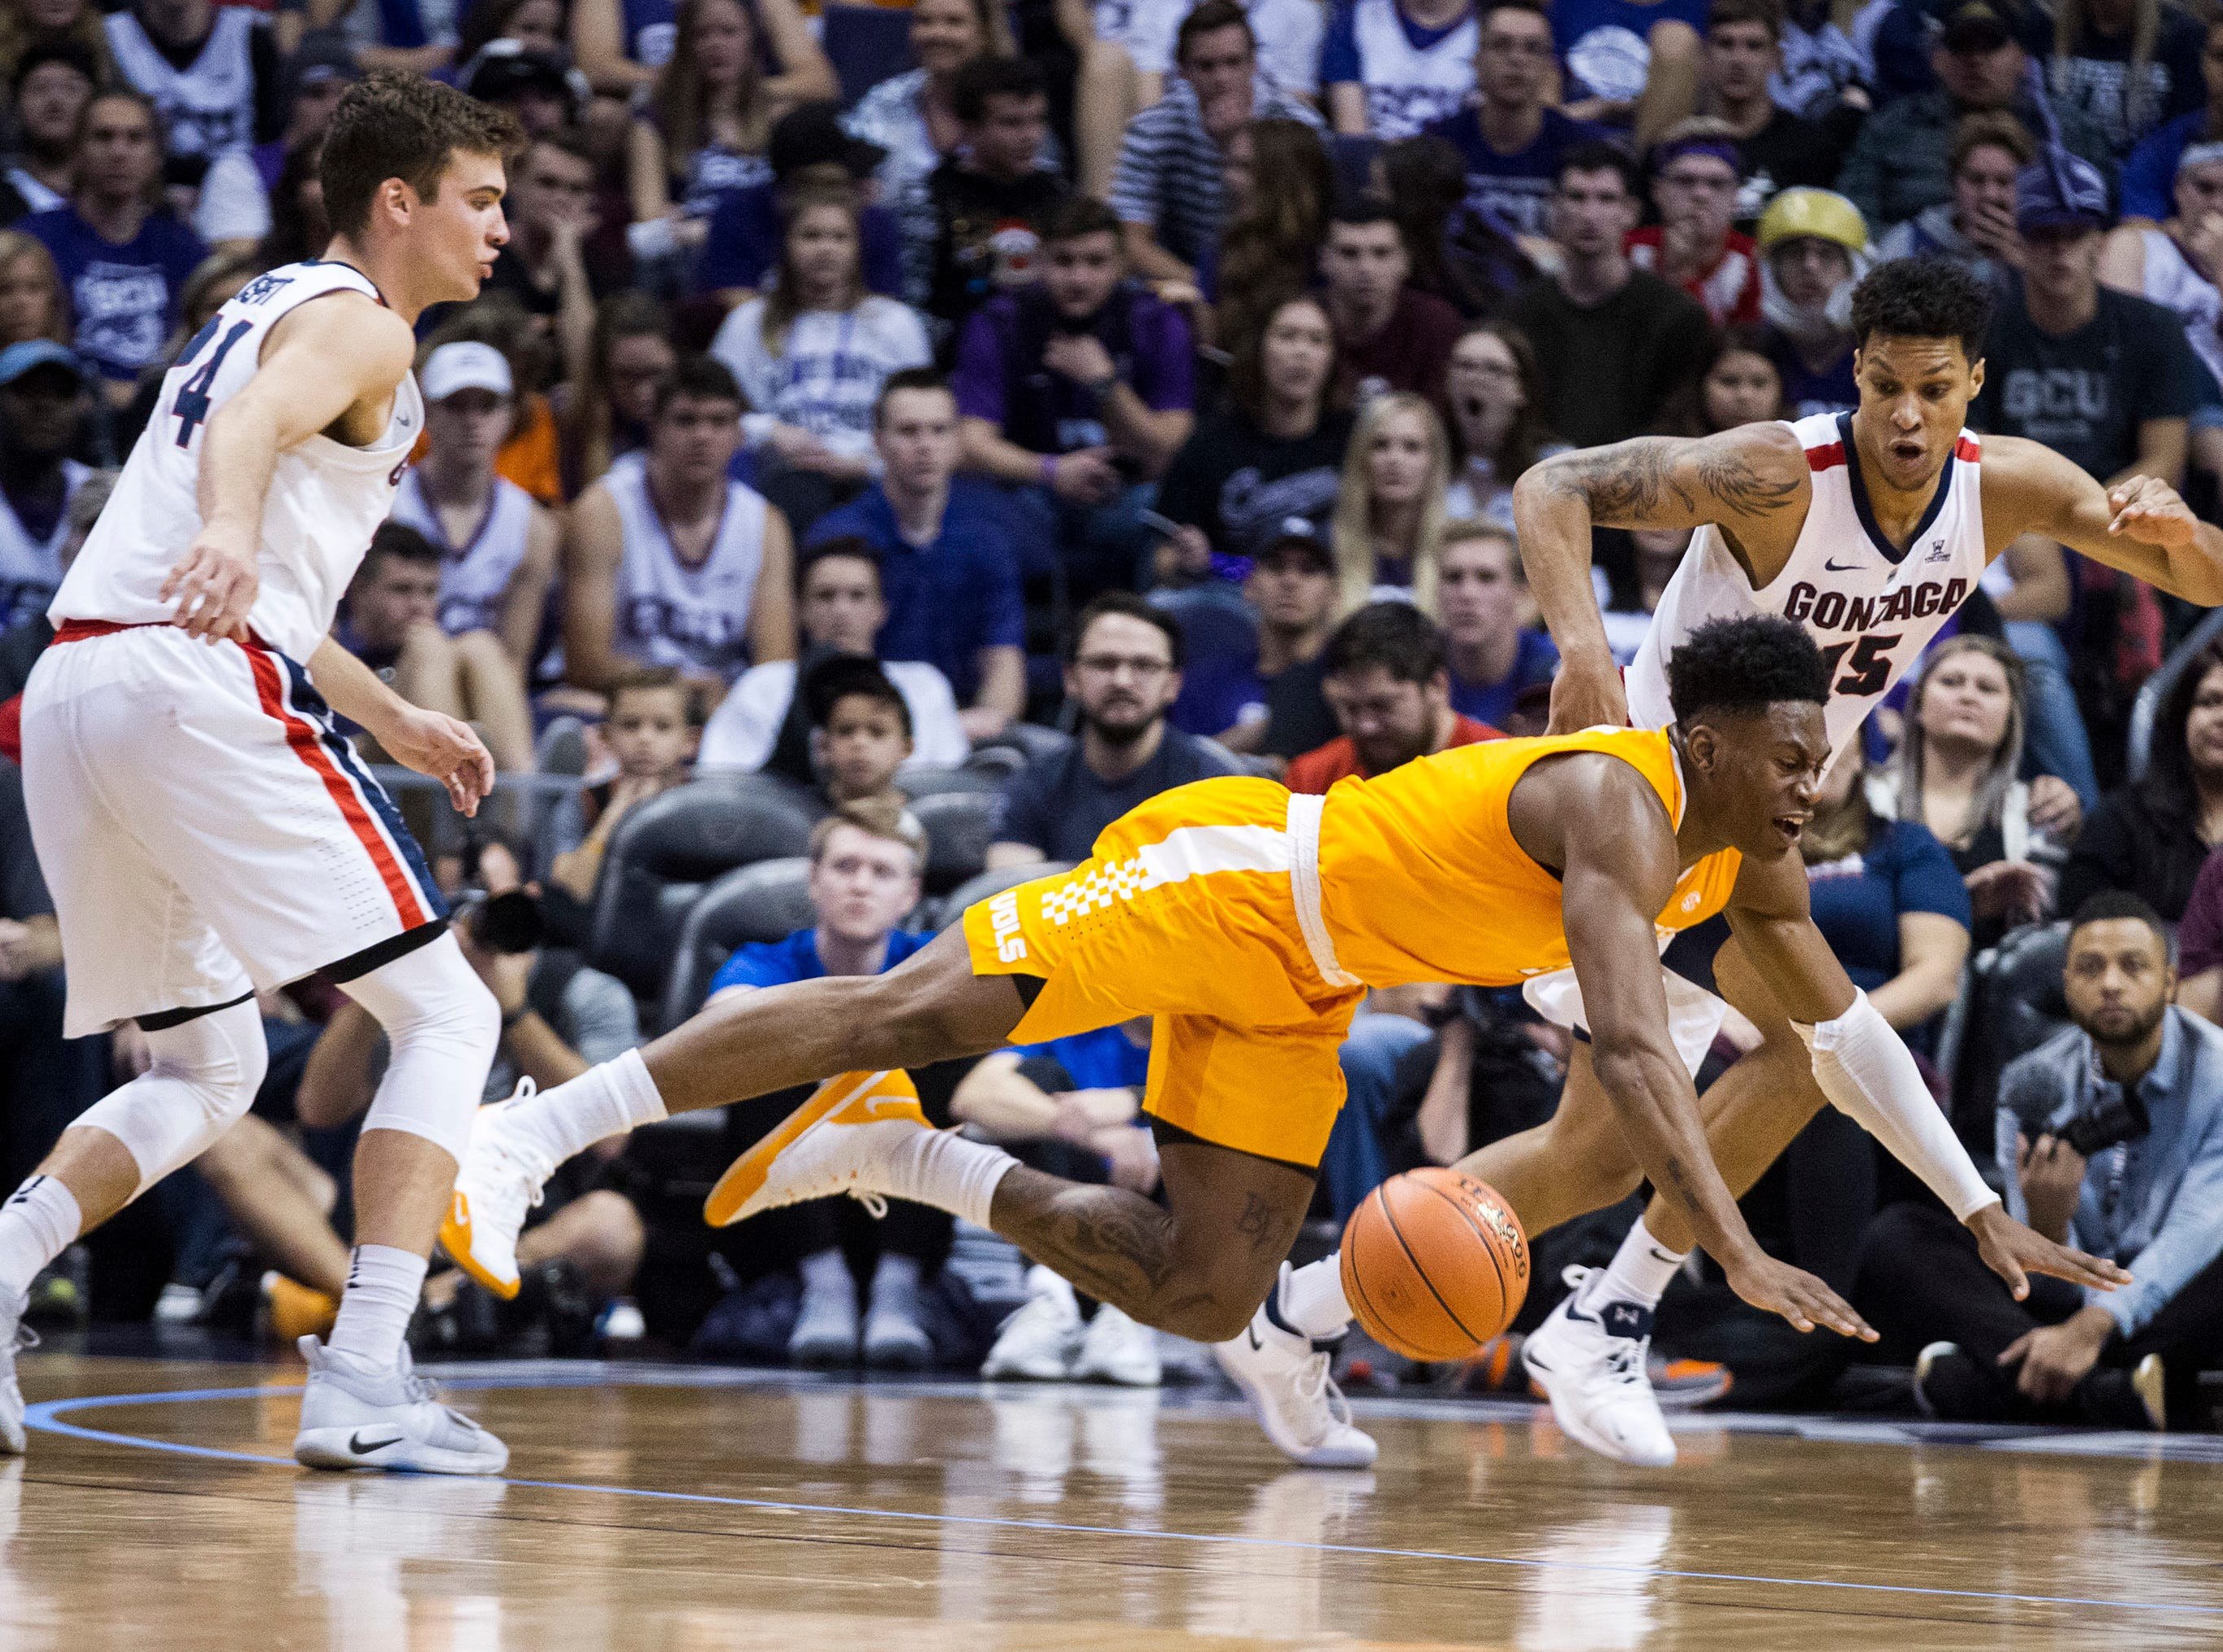 Tennessee's Admiral Schofield (5) loses the ball against Gonzaga's Corey Kispert (24) and Brandon Clarke (15) during the first half of an NCAA college basketball game Sunday, Dec. 9, 2018, in Phoenix.